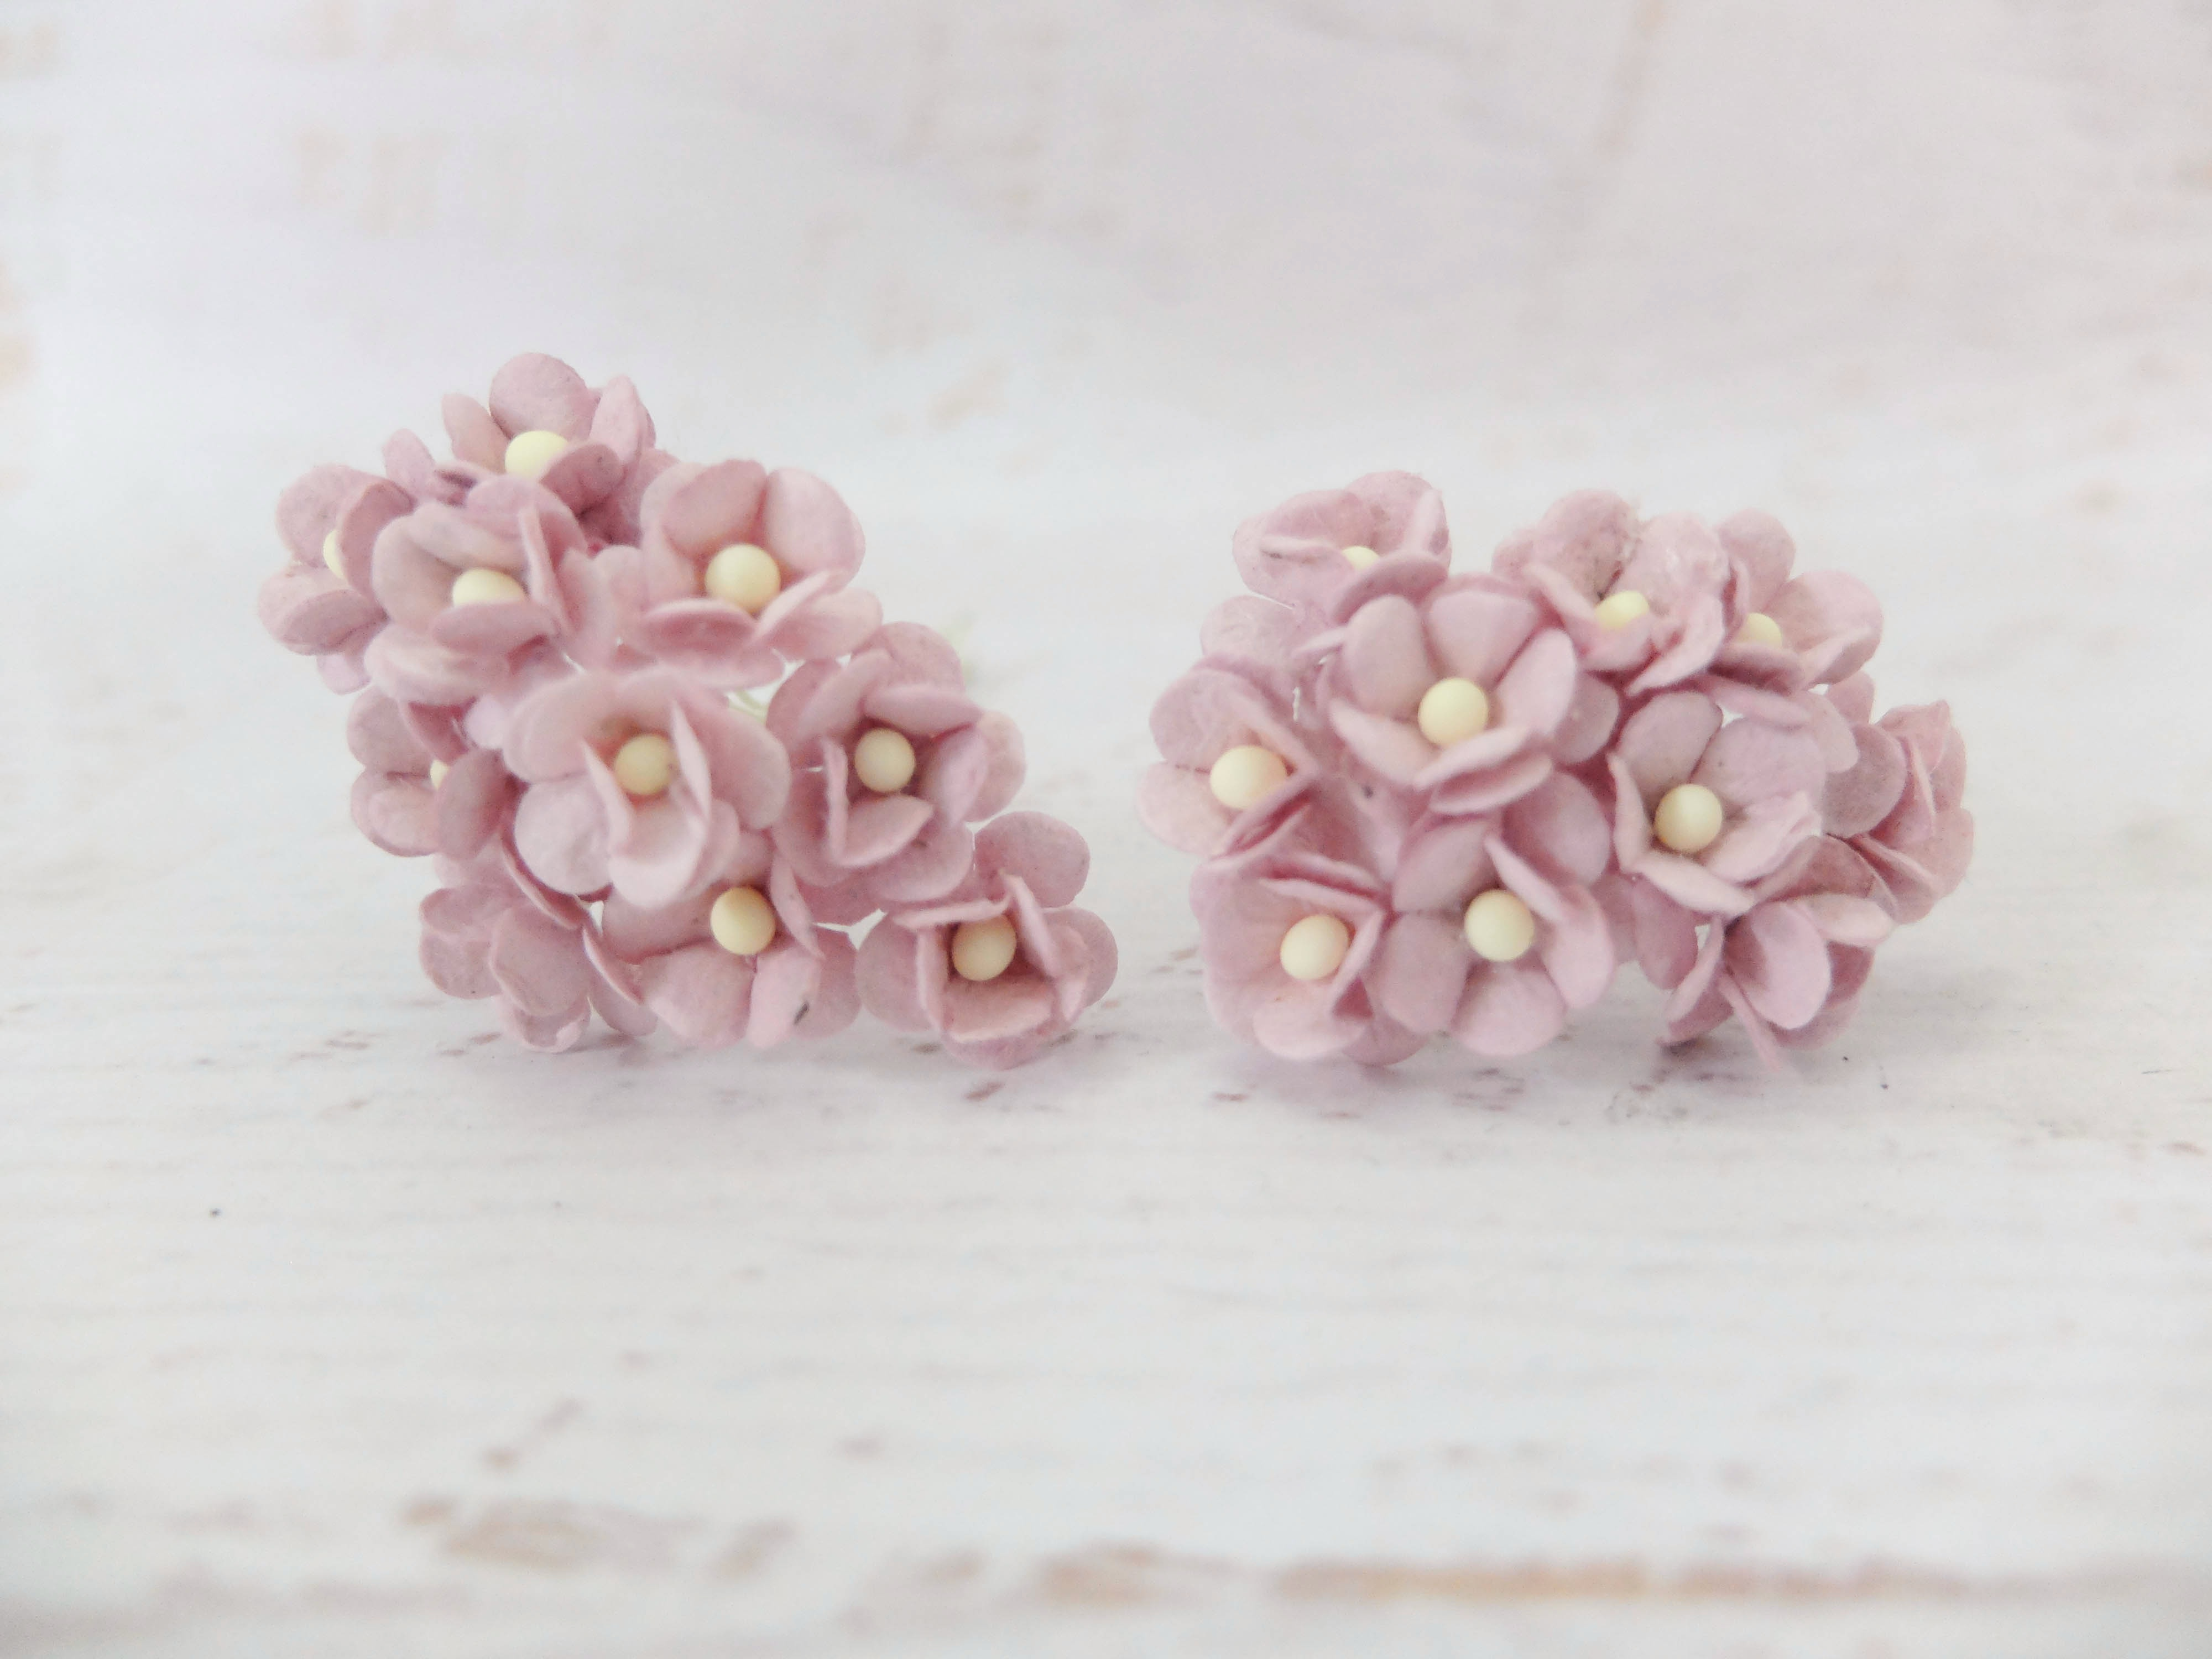 15mm Double Layers Paper Daisies 100 Pcs Mulberry Paper Flowers